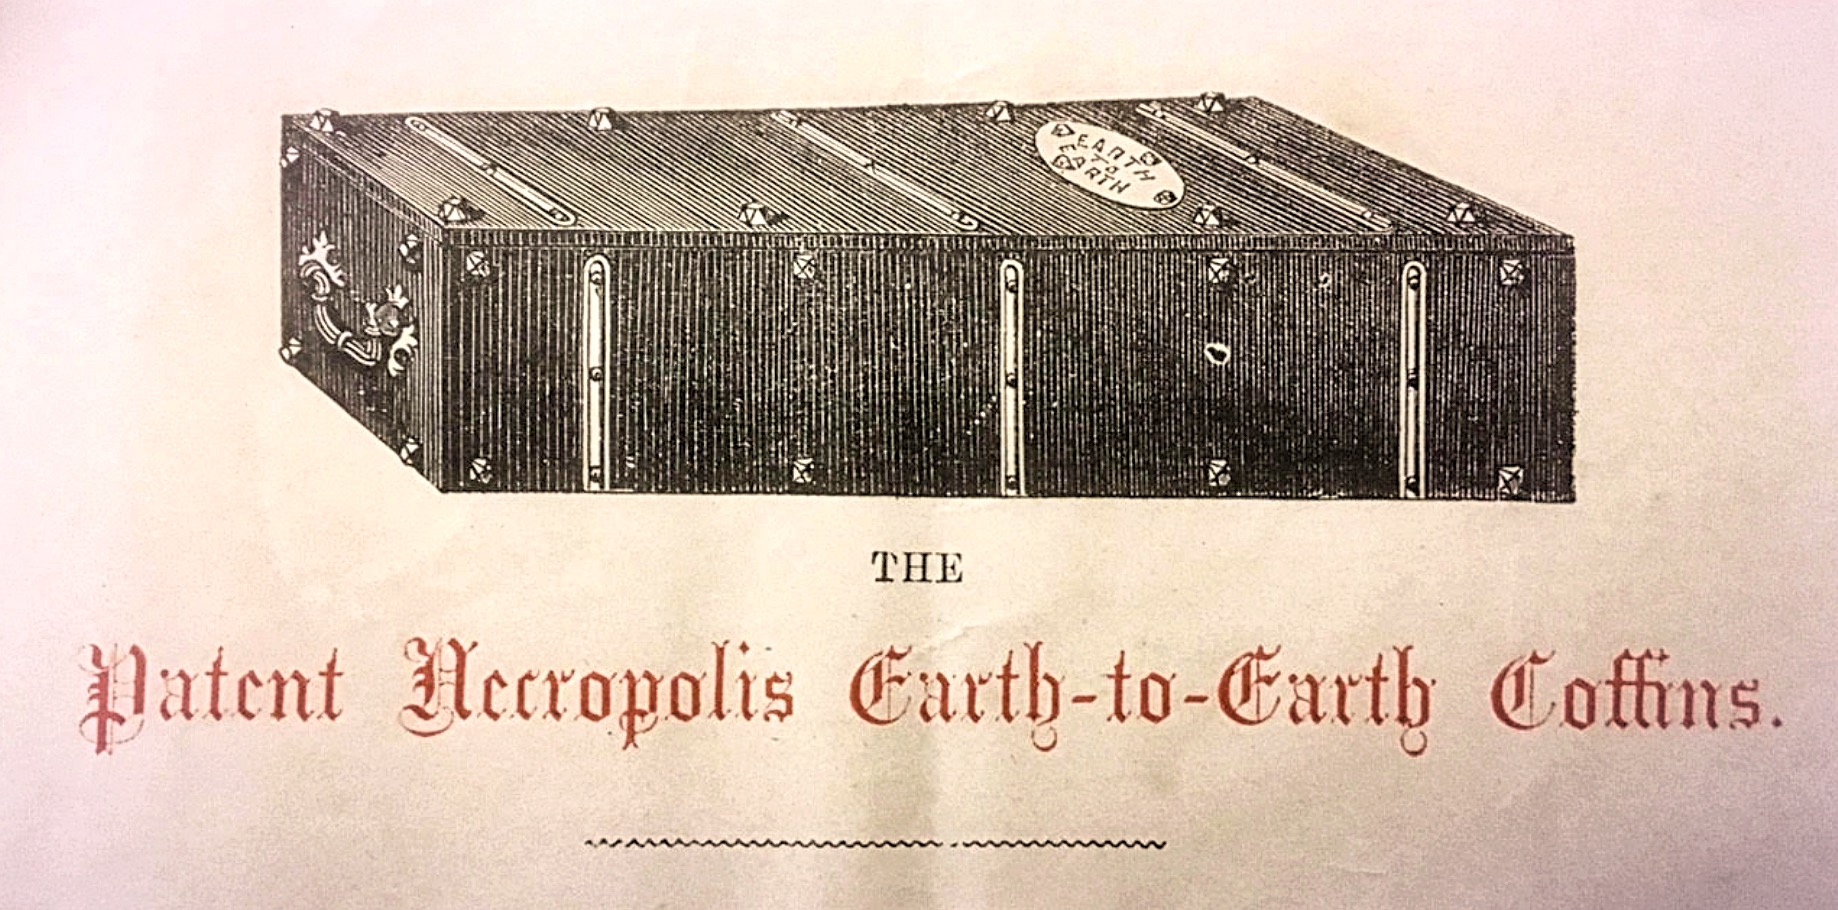 Biodegradable Earth to Earth Coffin designed for the London Necropolis Railway